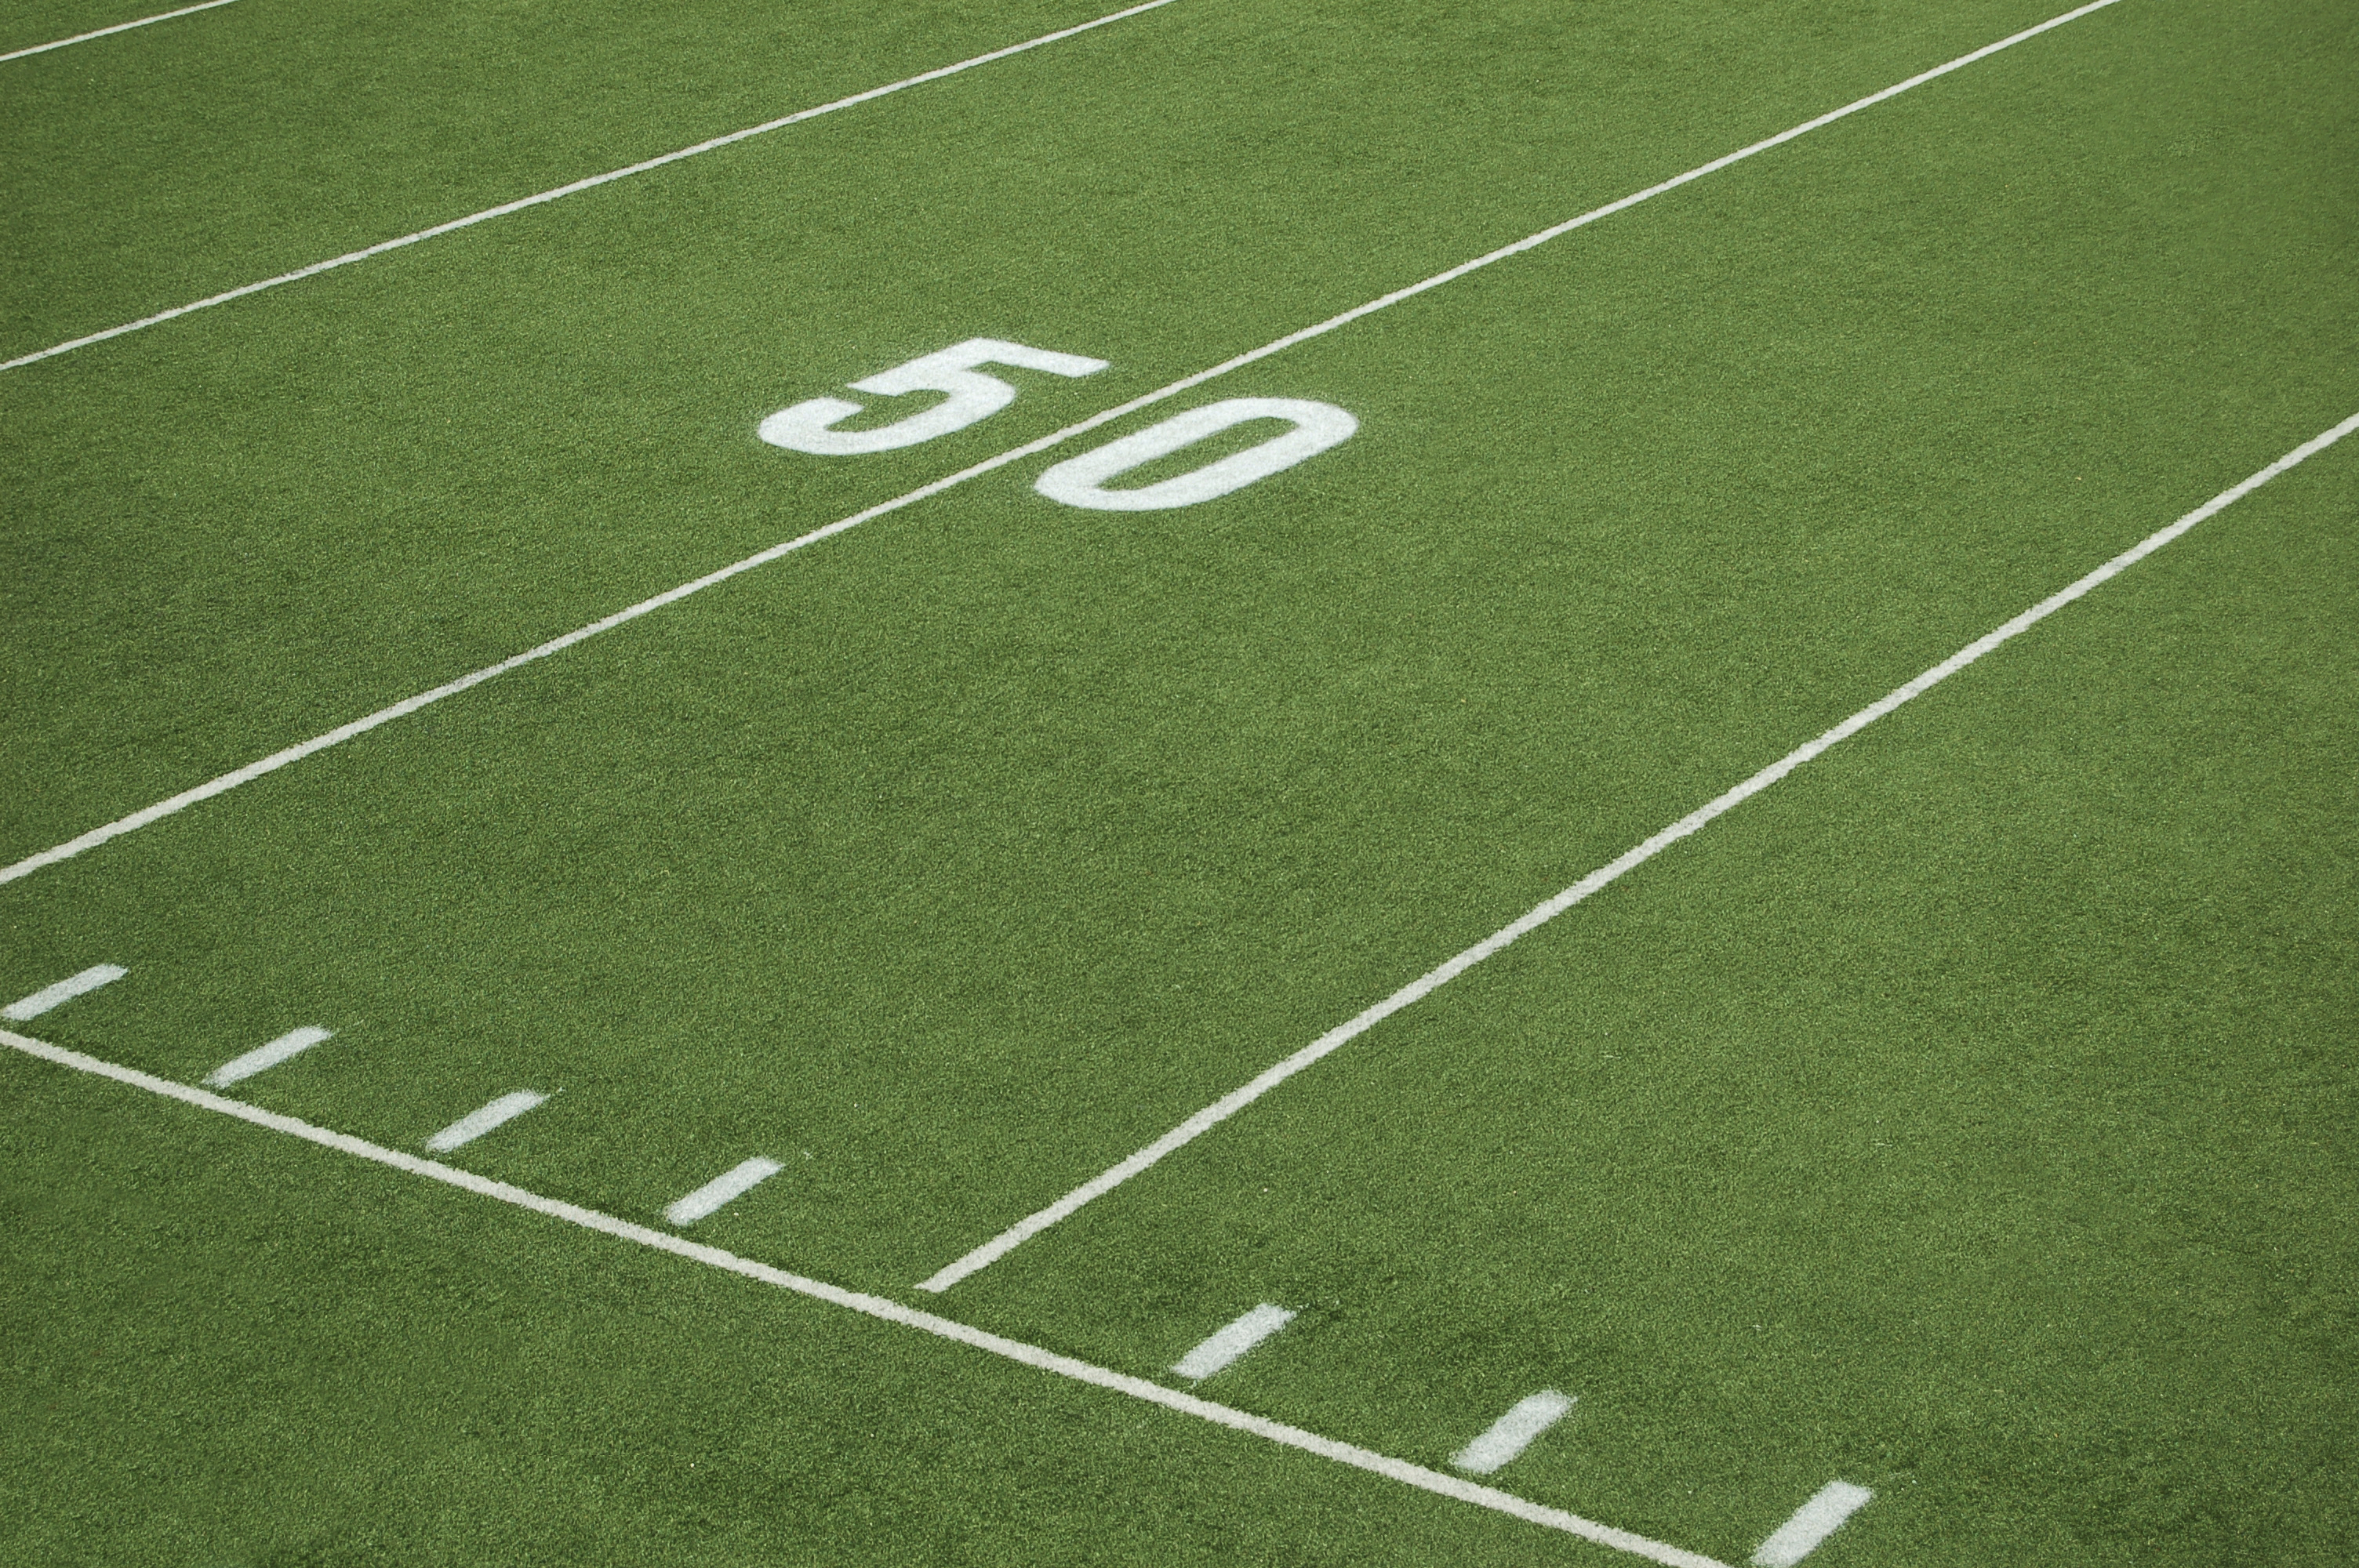 Stadium Turf - 50 Yard Line Distance